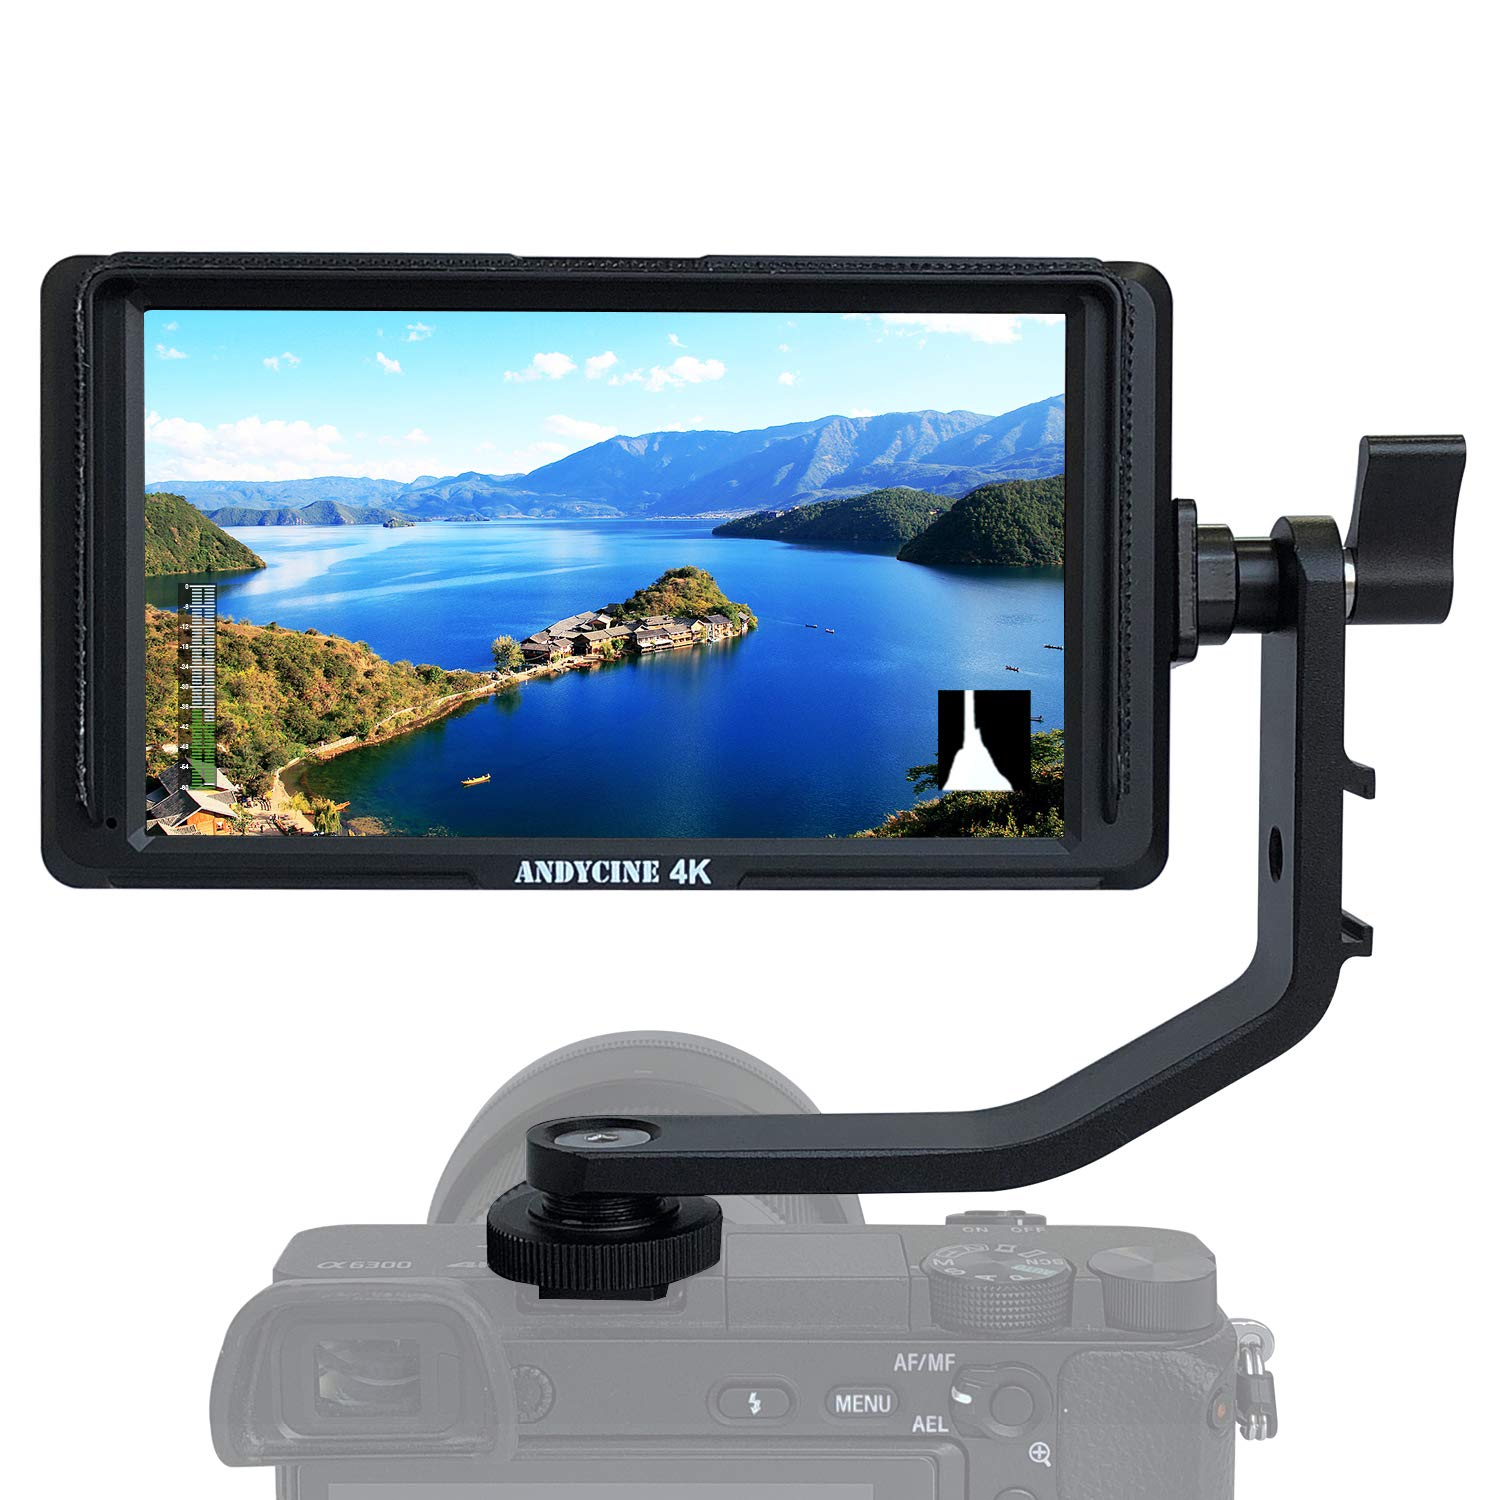 ANDYCINE A6 Lite 5inch DSLR HDMI Camera Field Monitor 1920x1080 Video Peaking Focus assits HDMI Input and Output DC Output with Tilt Arm by ANDYCINE